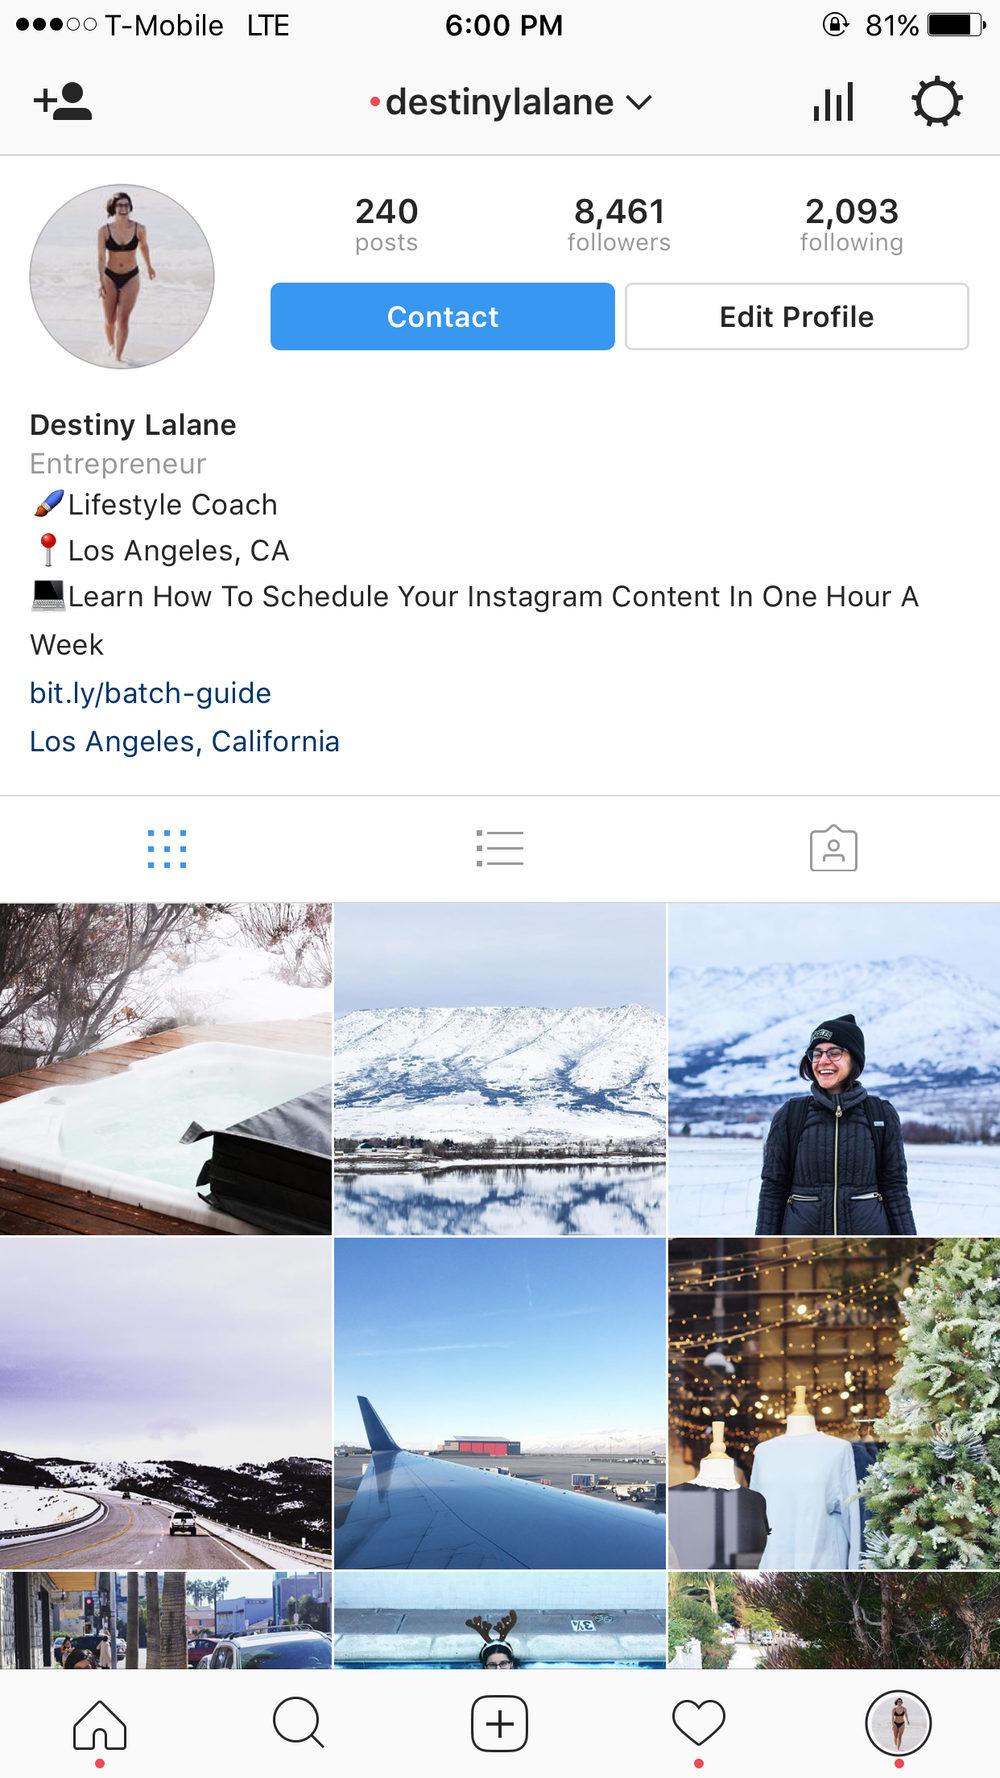 Step 1: Open the Instagram app on your phone or tablet. This currently can not be done on a desktop interface. Click the settings gear on the top right of the screen.